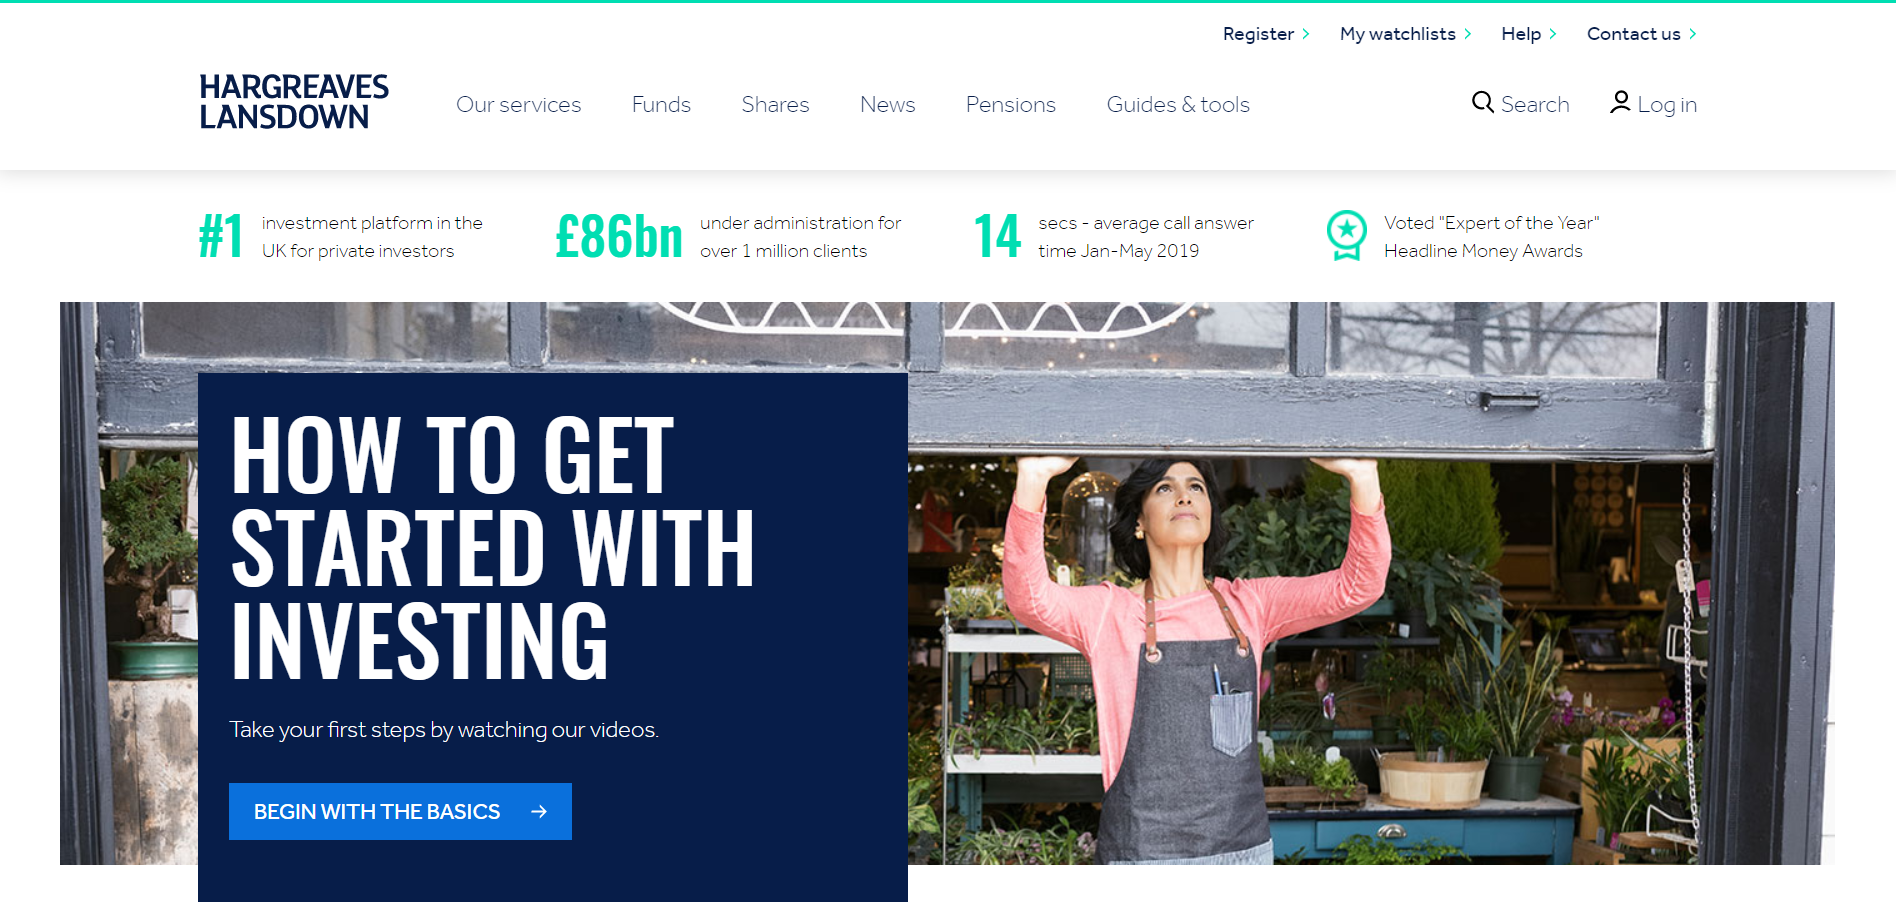 This is the homepage of hargreaves lansdown